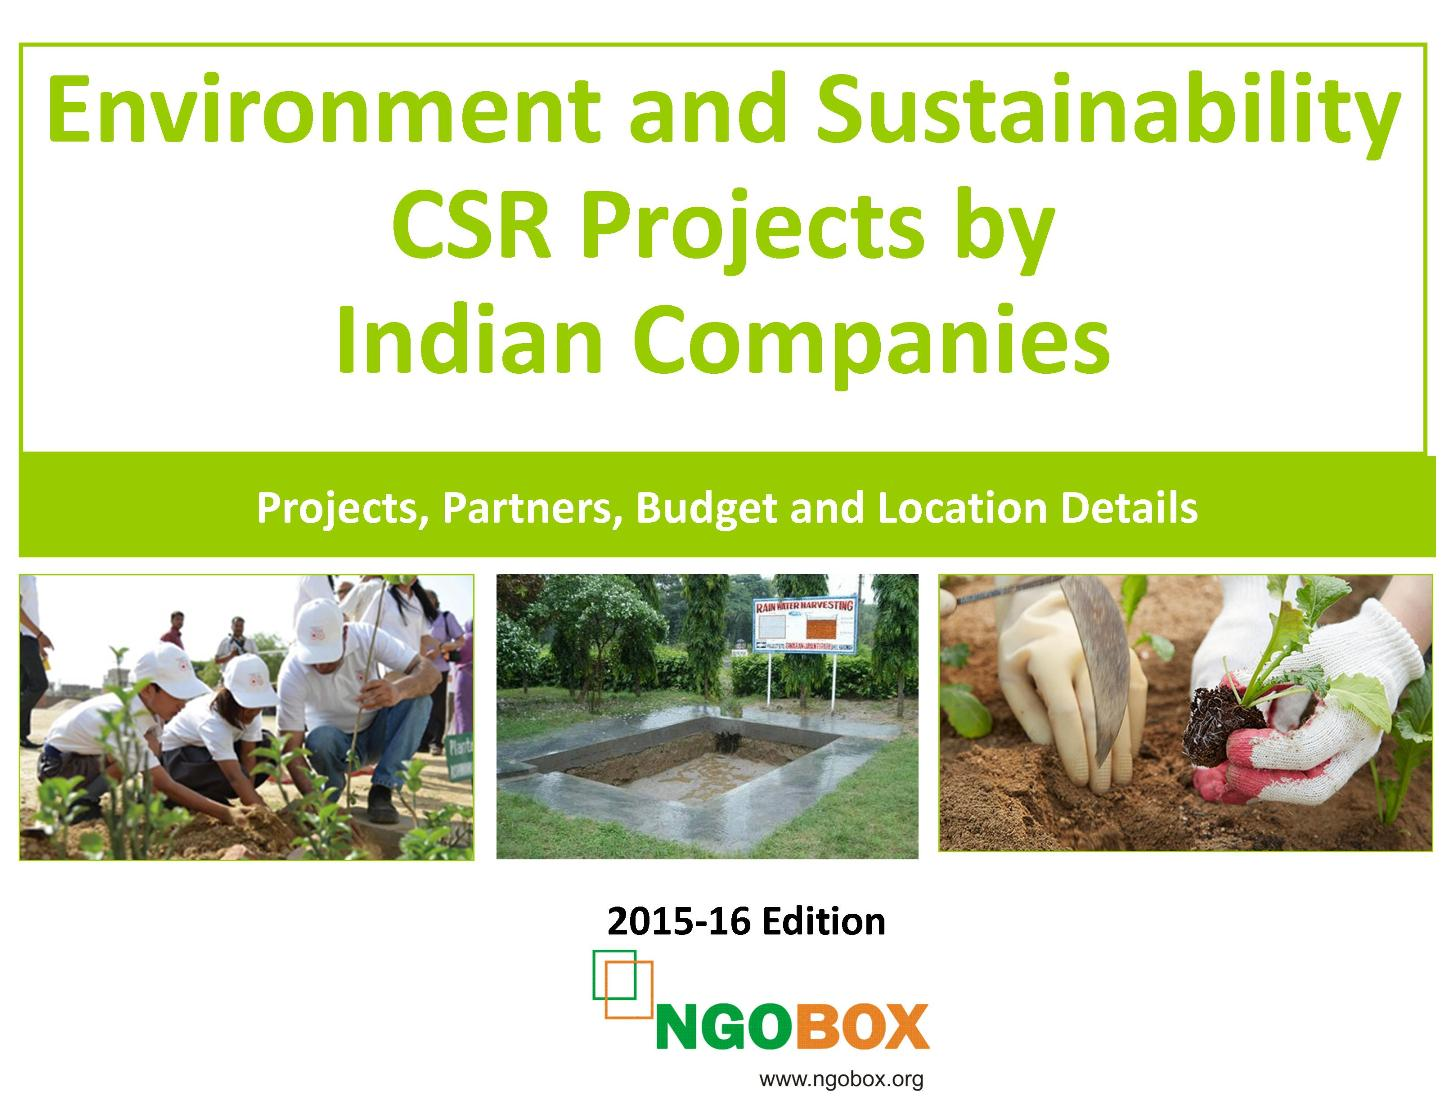 Environment and Sustainability CSR Projects by Indian Companies